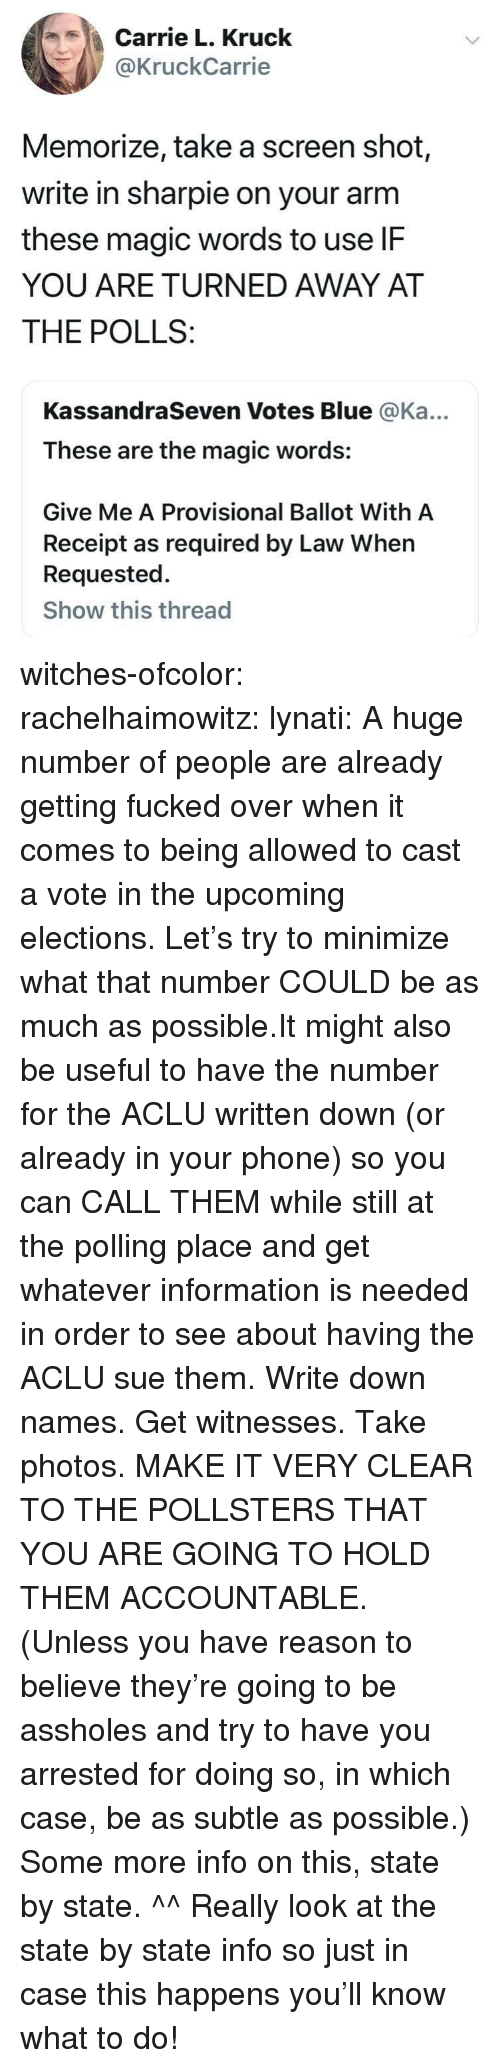 Phone, Some More, and Tumblr: Carrie L. Kruck  @KruckCarrie  Memorize, take a screen shot,  write in sharpie on your arm  these magic words to use lF  YOU ARE TURNED AWAY AT  THE POLLS:  KassandraSeven Votes Blue @Ka...  These are the magic words:  Give Me A Provisional Ballot With A  Receipt as required by Law When  Requested.  Show this thread witches-ofcolor: rachelhaimowitz:  lynati: A huge number of people are already getting fucked over when it comes to being allowed to cast a vote in the upcoming elections. Let's try to minimize what that number COULD be as much as possible.It might also be useful to have the number for the ACLU written down (or already in your phone) so you can CALL THEM while still at the polling place and get whatever information is needed in order to see about having the ACLU sue them. Write down names. Get witnesses. Take photos. MAKE IT VERY CLEAR TO THE POLLSTERS THAT YOU ARE GOING TO HOLD THEM ACCOUNTABLE. (Unless you have reason to believe they're going to be assholes and try to have you arrested for doing so, in which case, be as subtle as possible.) Some more info on this, state by state.  ^^ Really look at the state by state info so just in case this happens you'll know what to do!